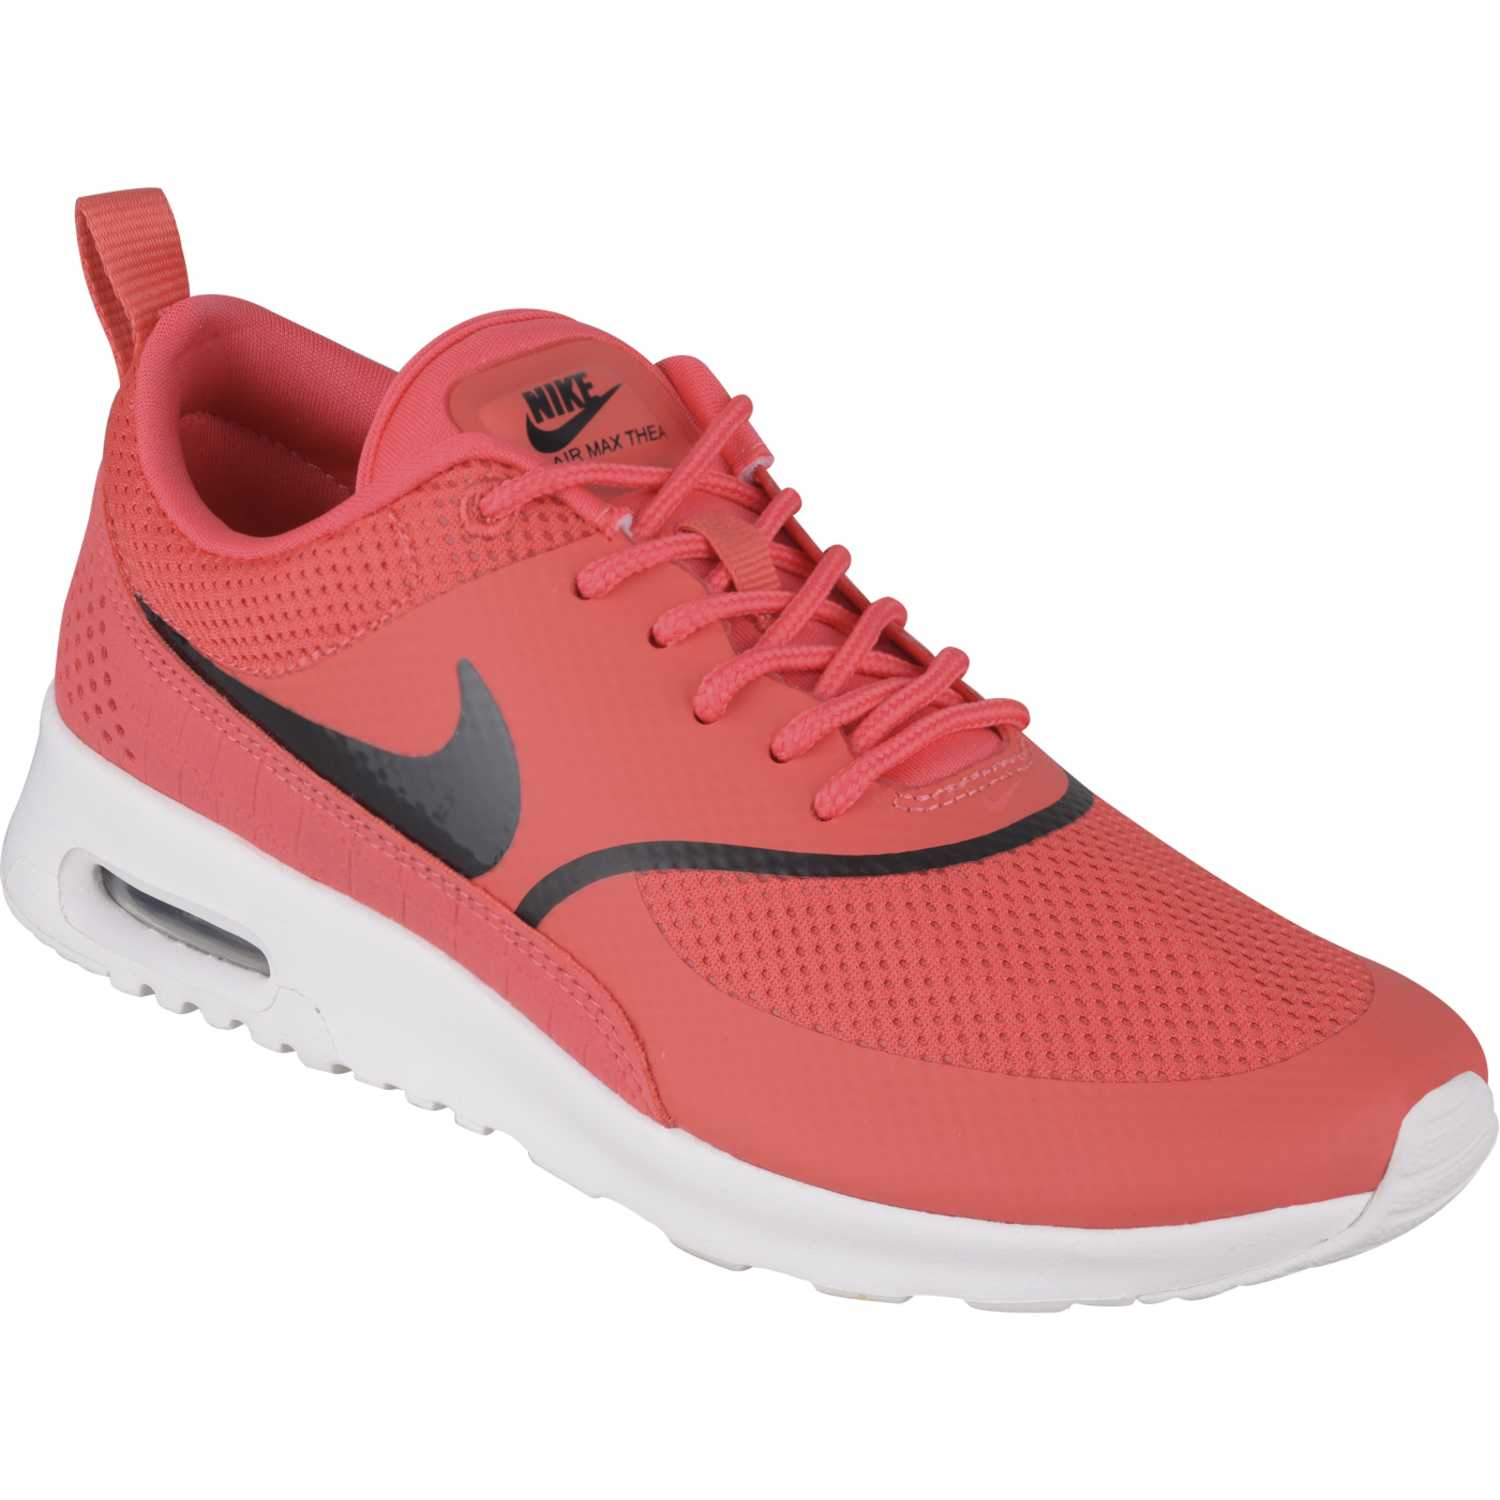 Casual de Mujer Nike Coral / blanco wmns air max thea